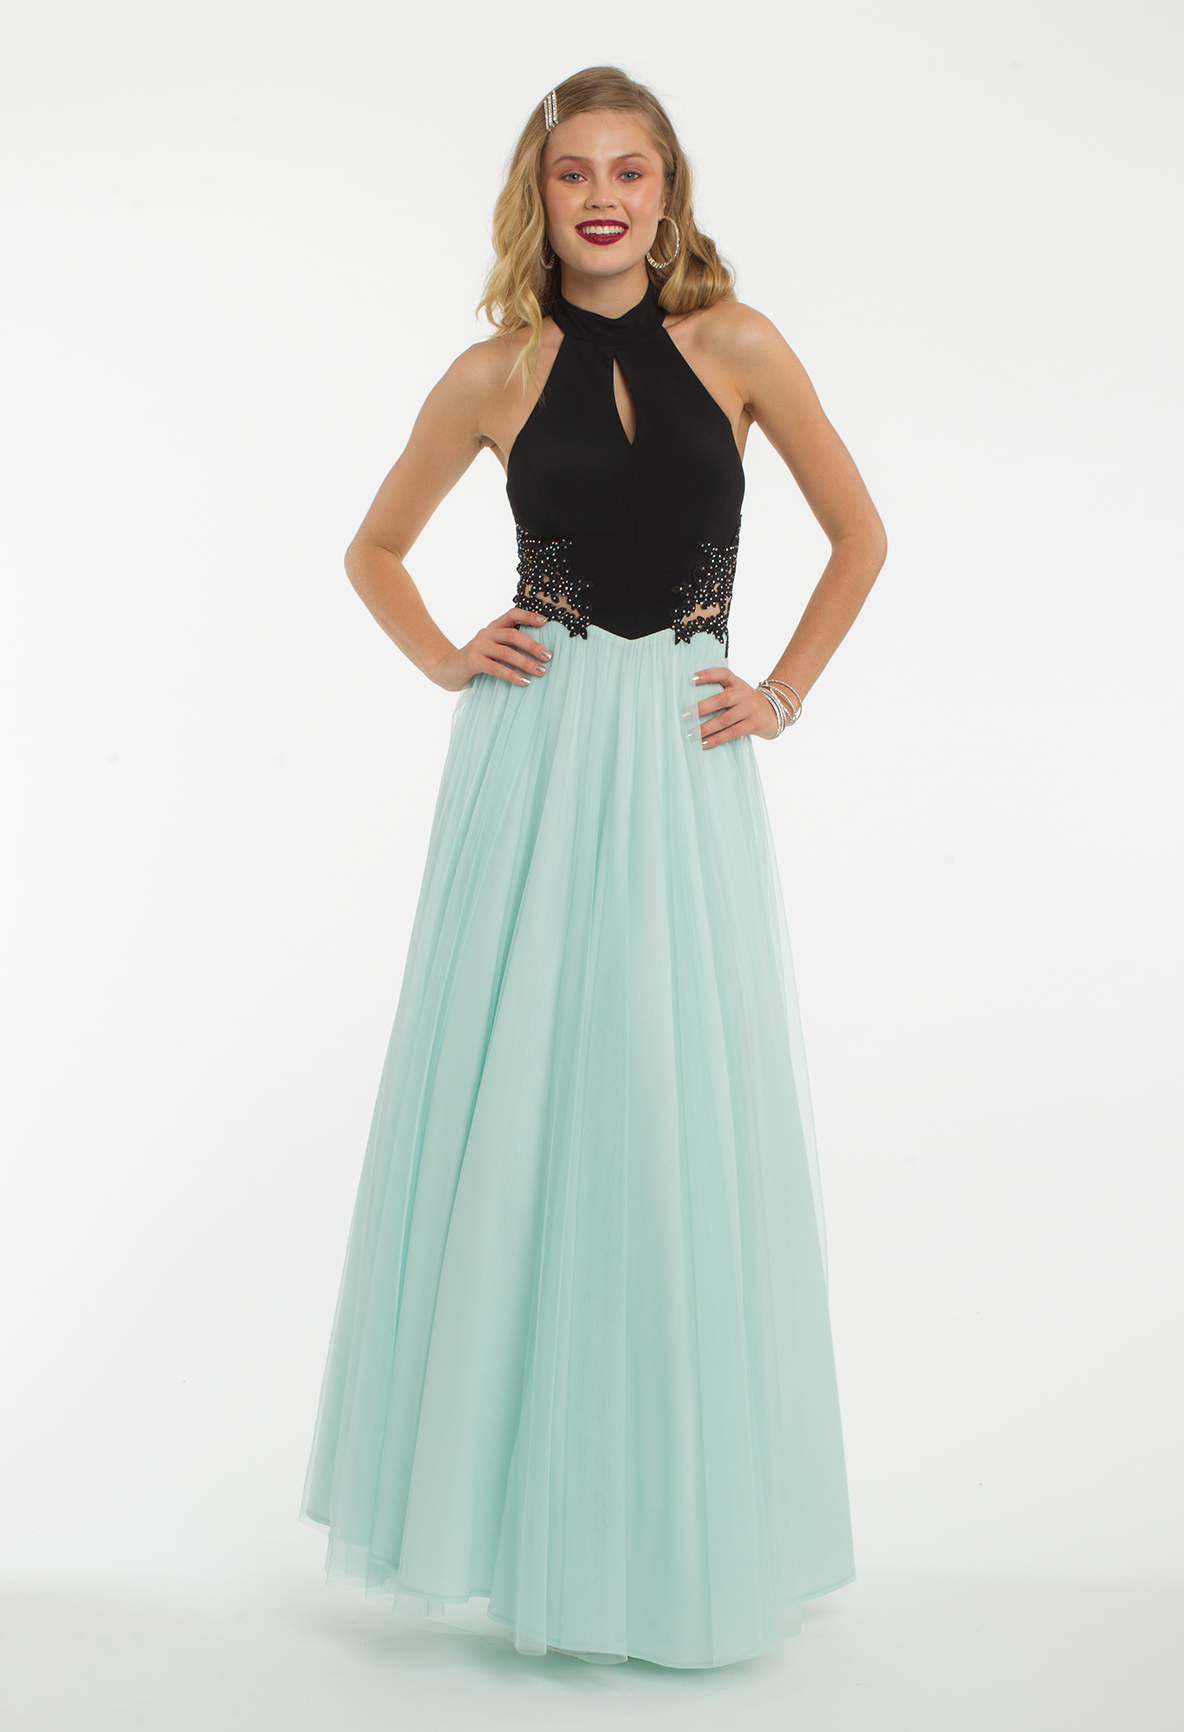 647d0bf12c Keep it comfy and trendy with this long prom dress! The halter keyhole  neckline